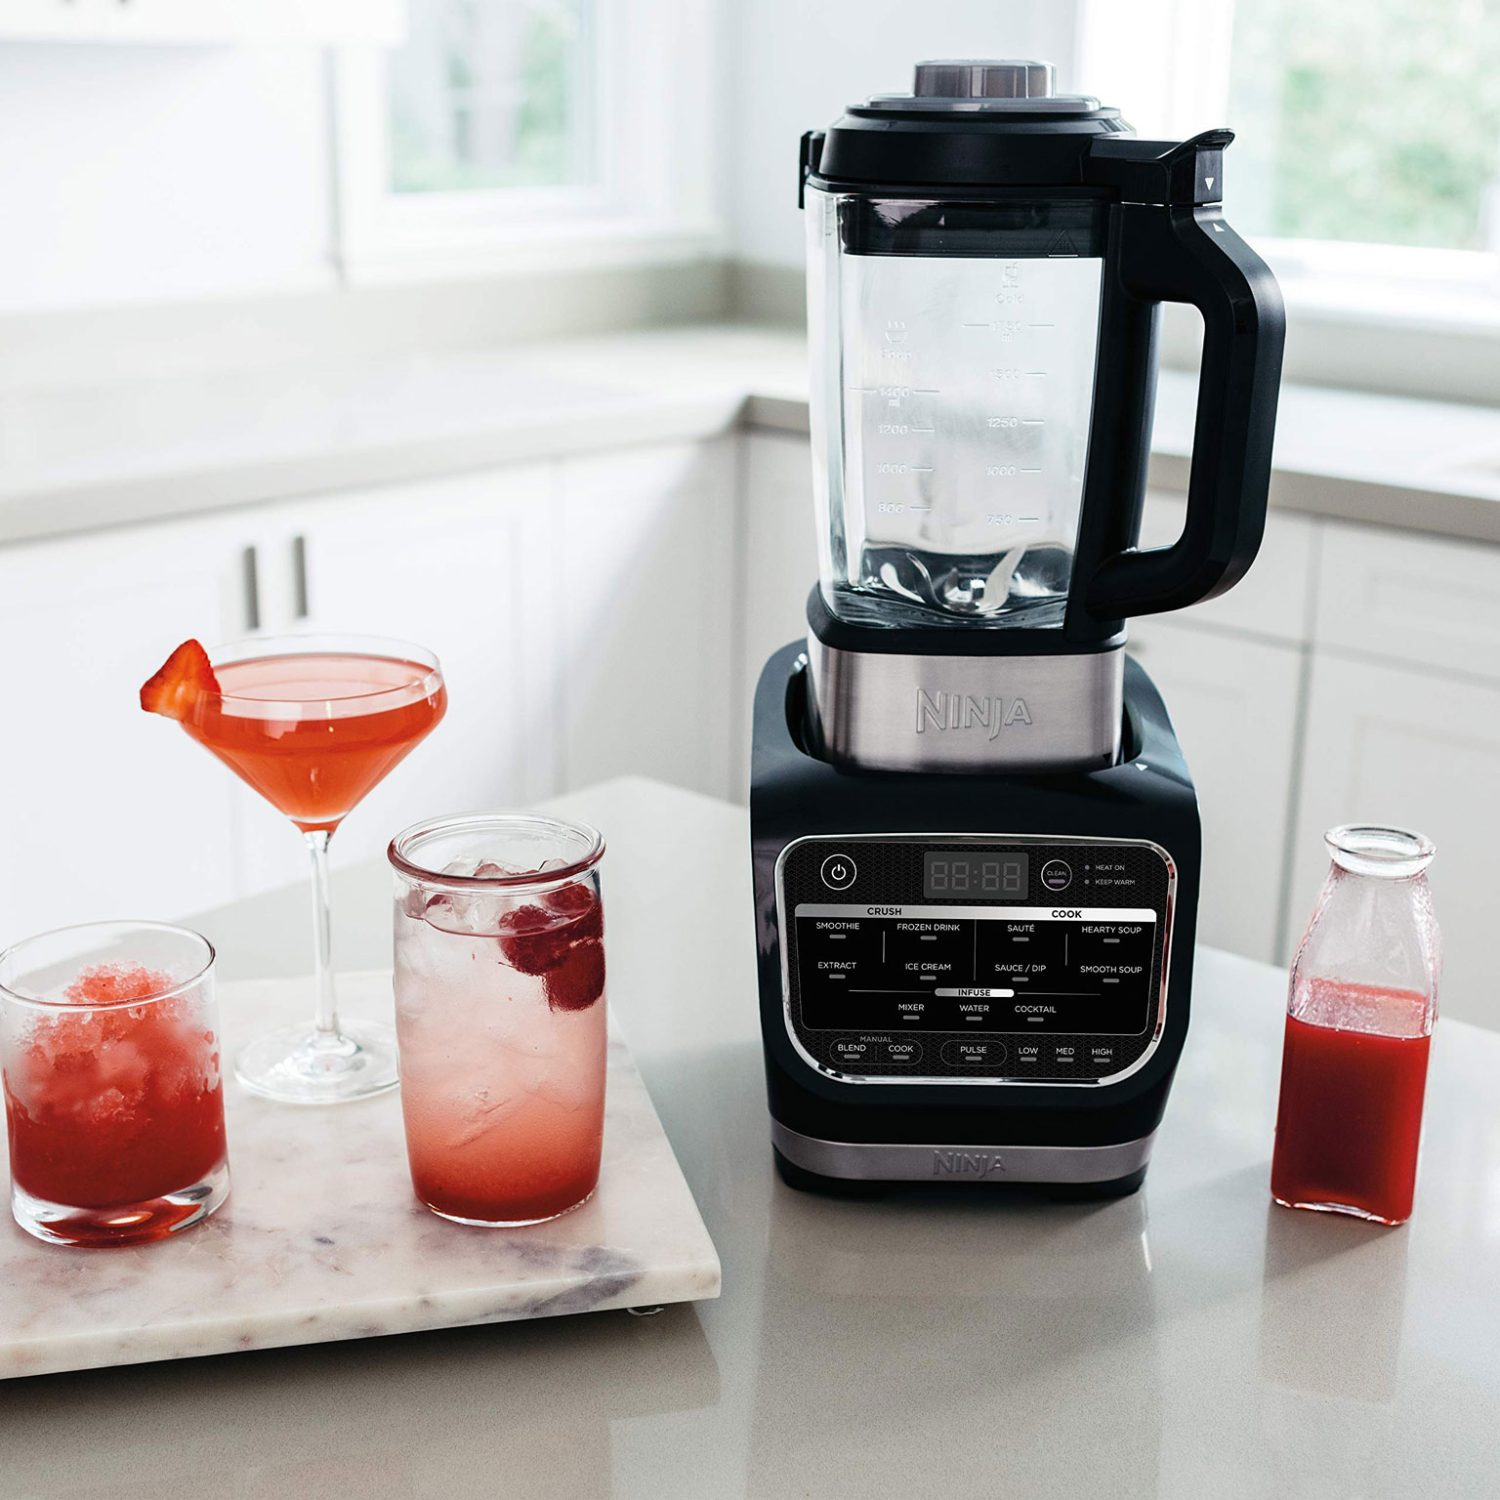 נוטרי נינג'ה בלנדר חכם Cold & Hot Blender דגם HB153